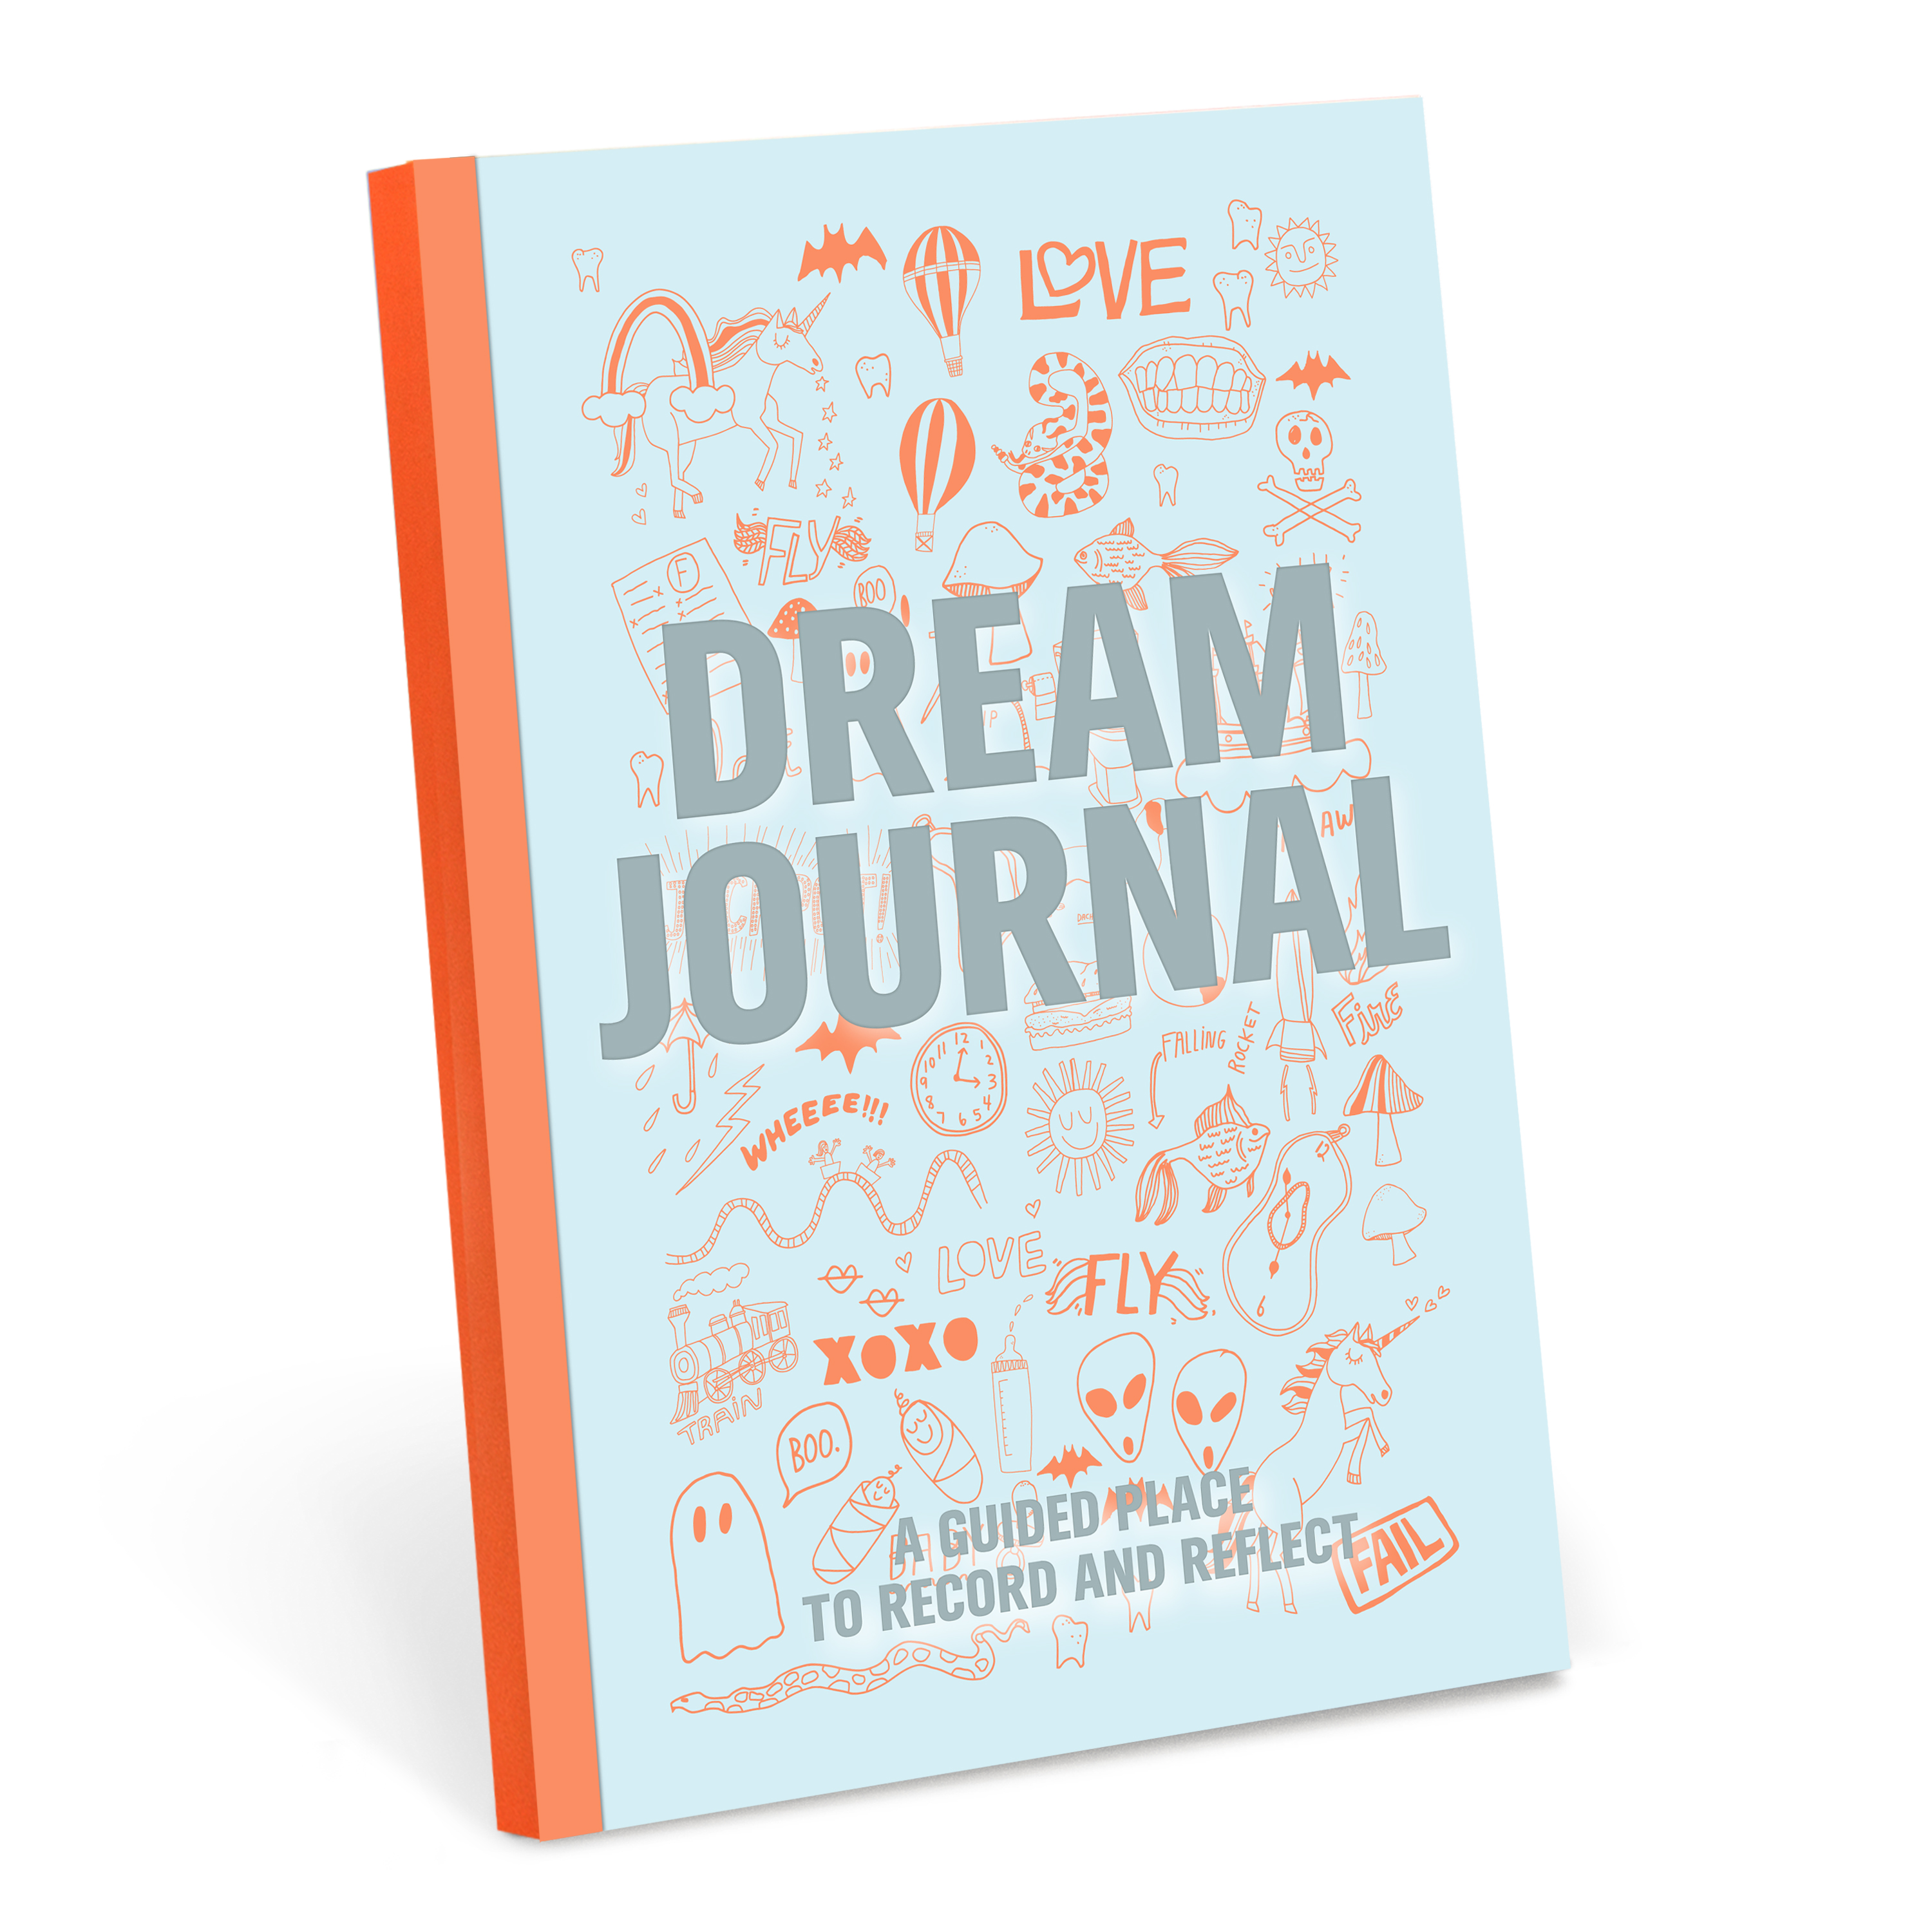 journal 10 the american dream and There are more than 320 million american dreams we can count — and countless others both here and around the world we may never discover this week the san.